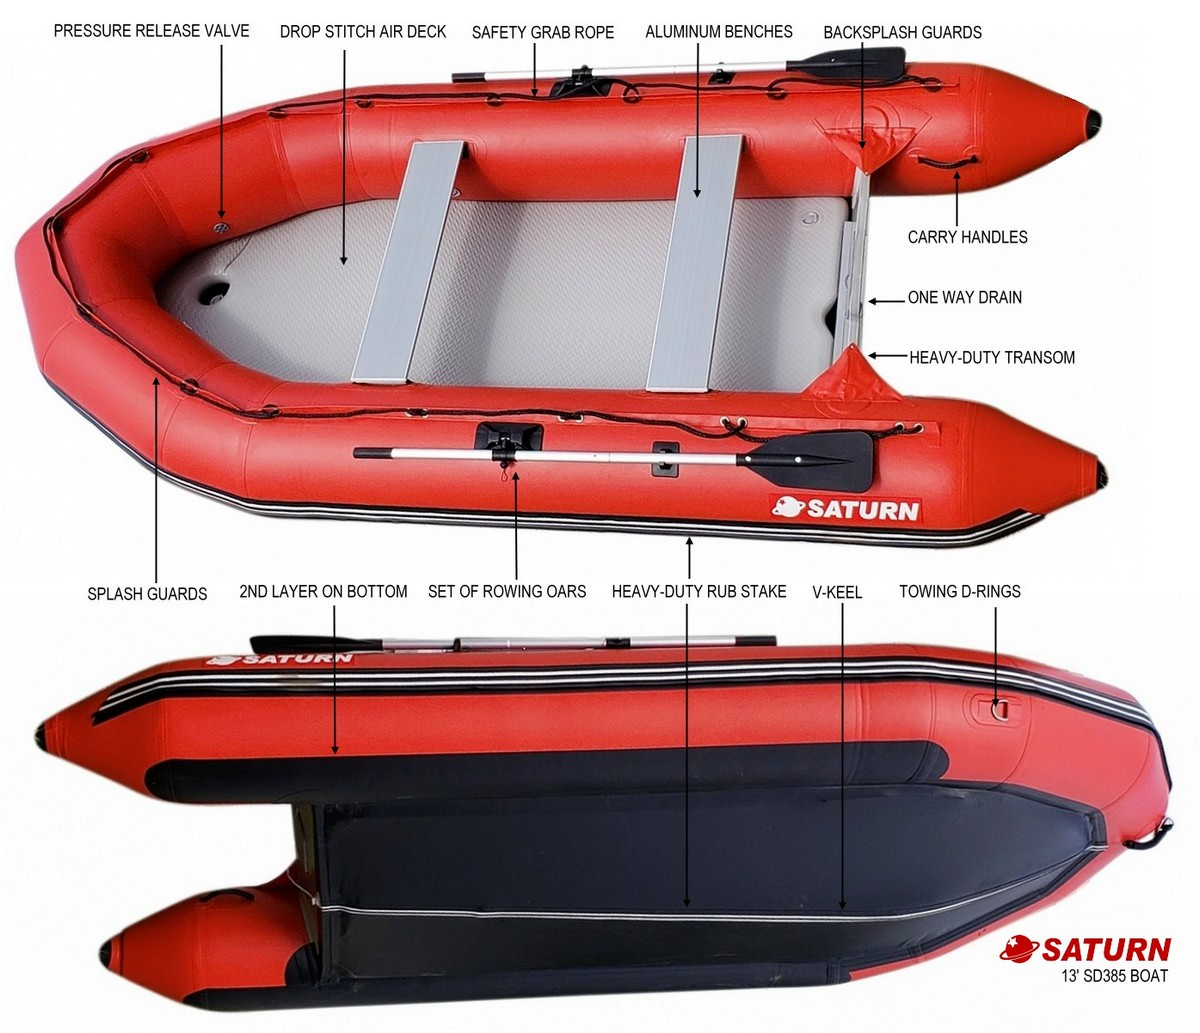 Saturn SD385 Inflatable Boat Details